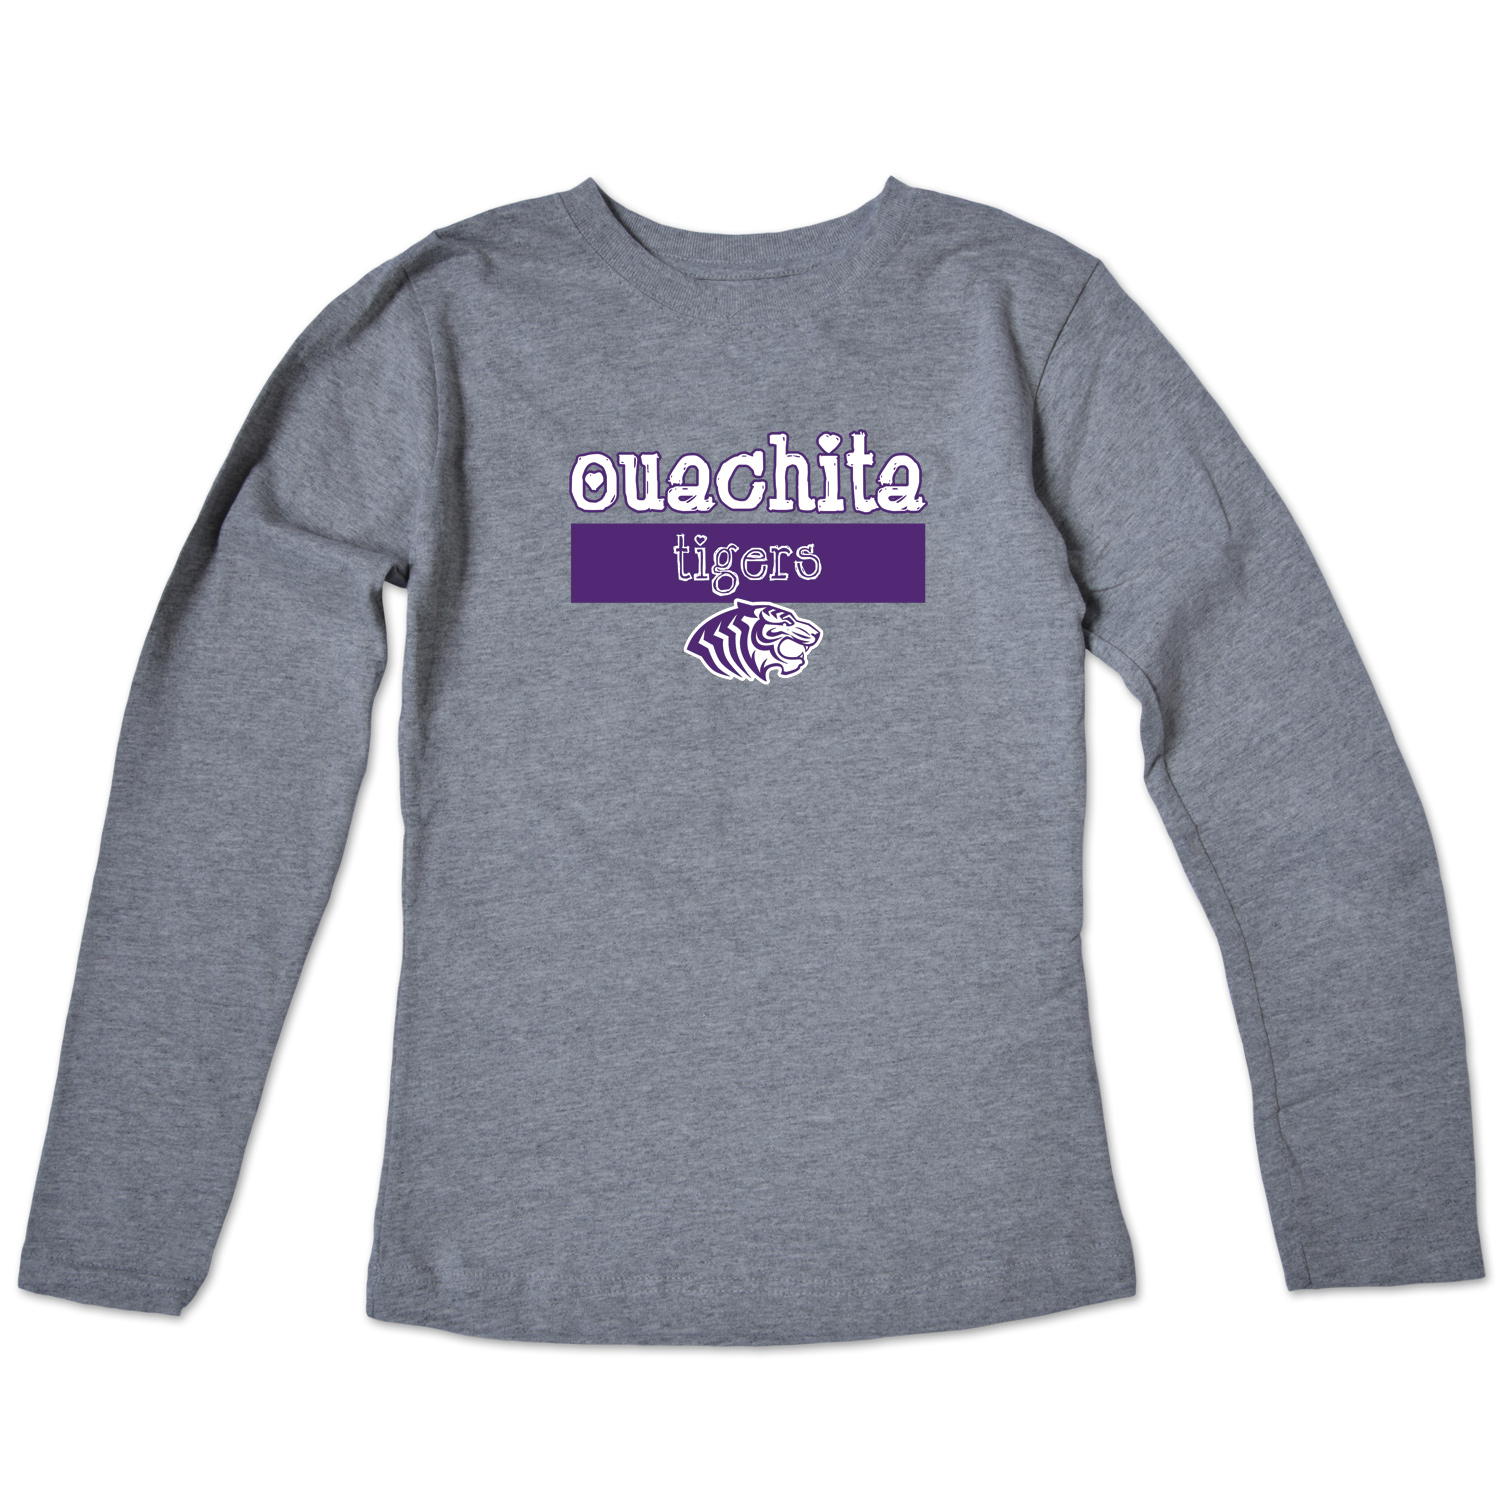 OUACHITA TIGERS YOUTH GIRLS LS TEE